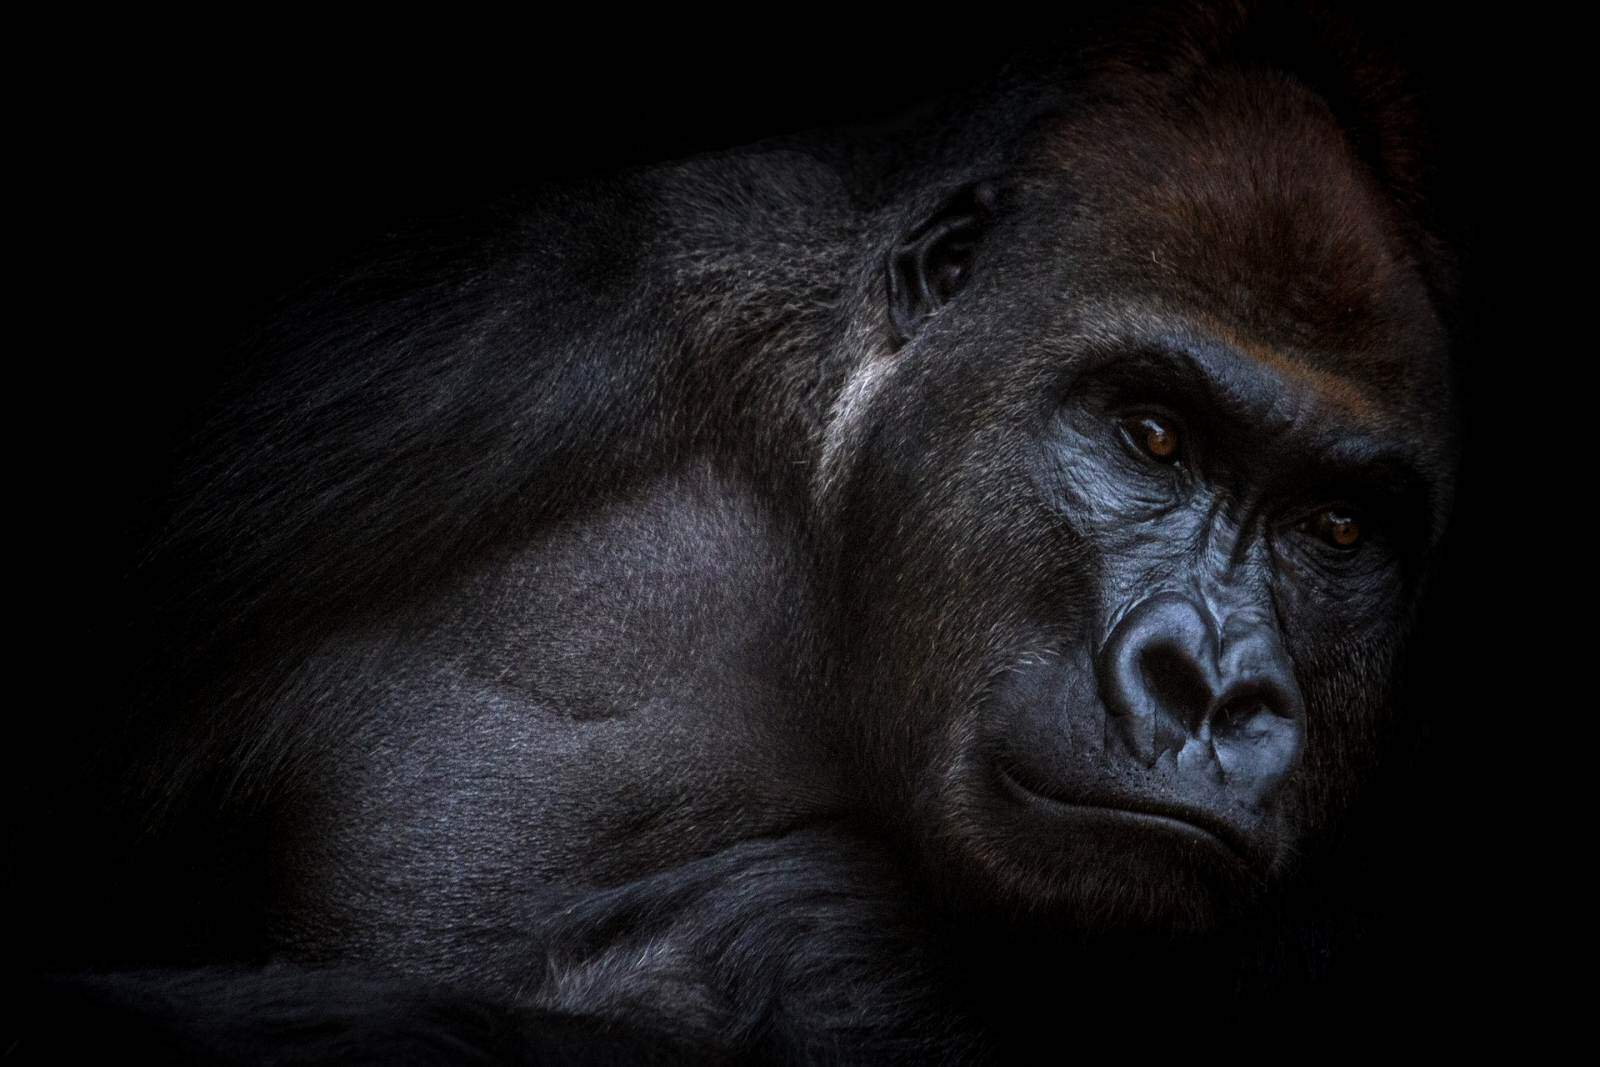 Conservation Groups Launch Campaign to Save Last Cross River Gorillas